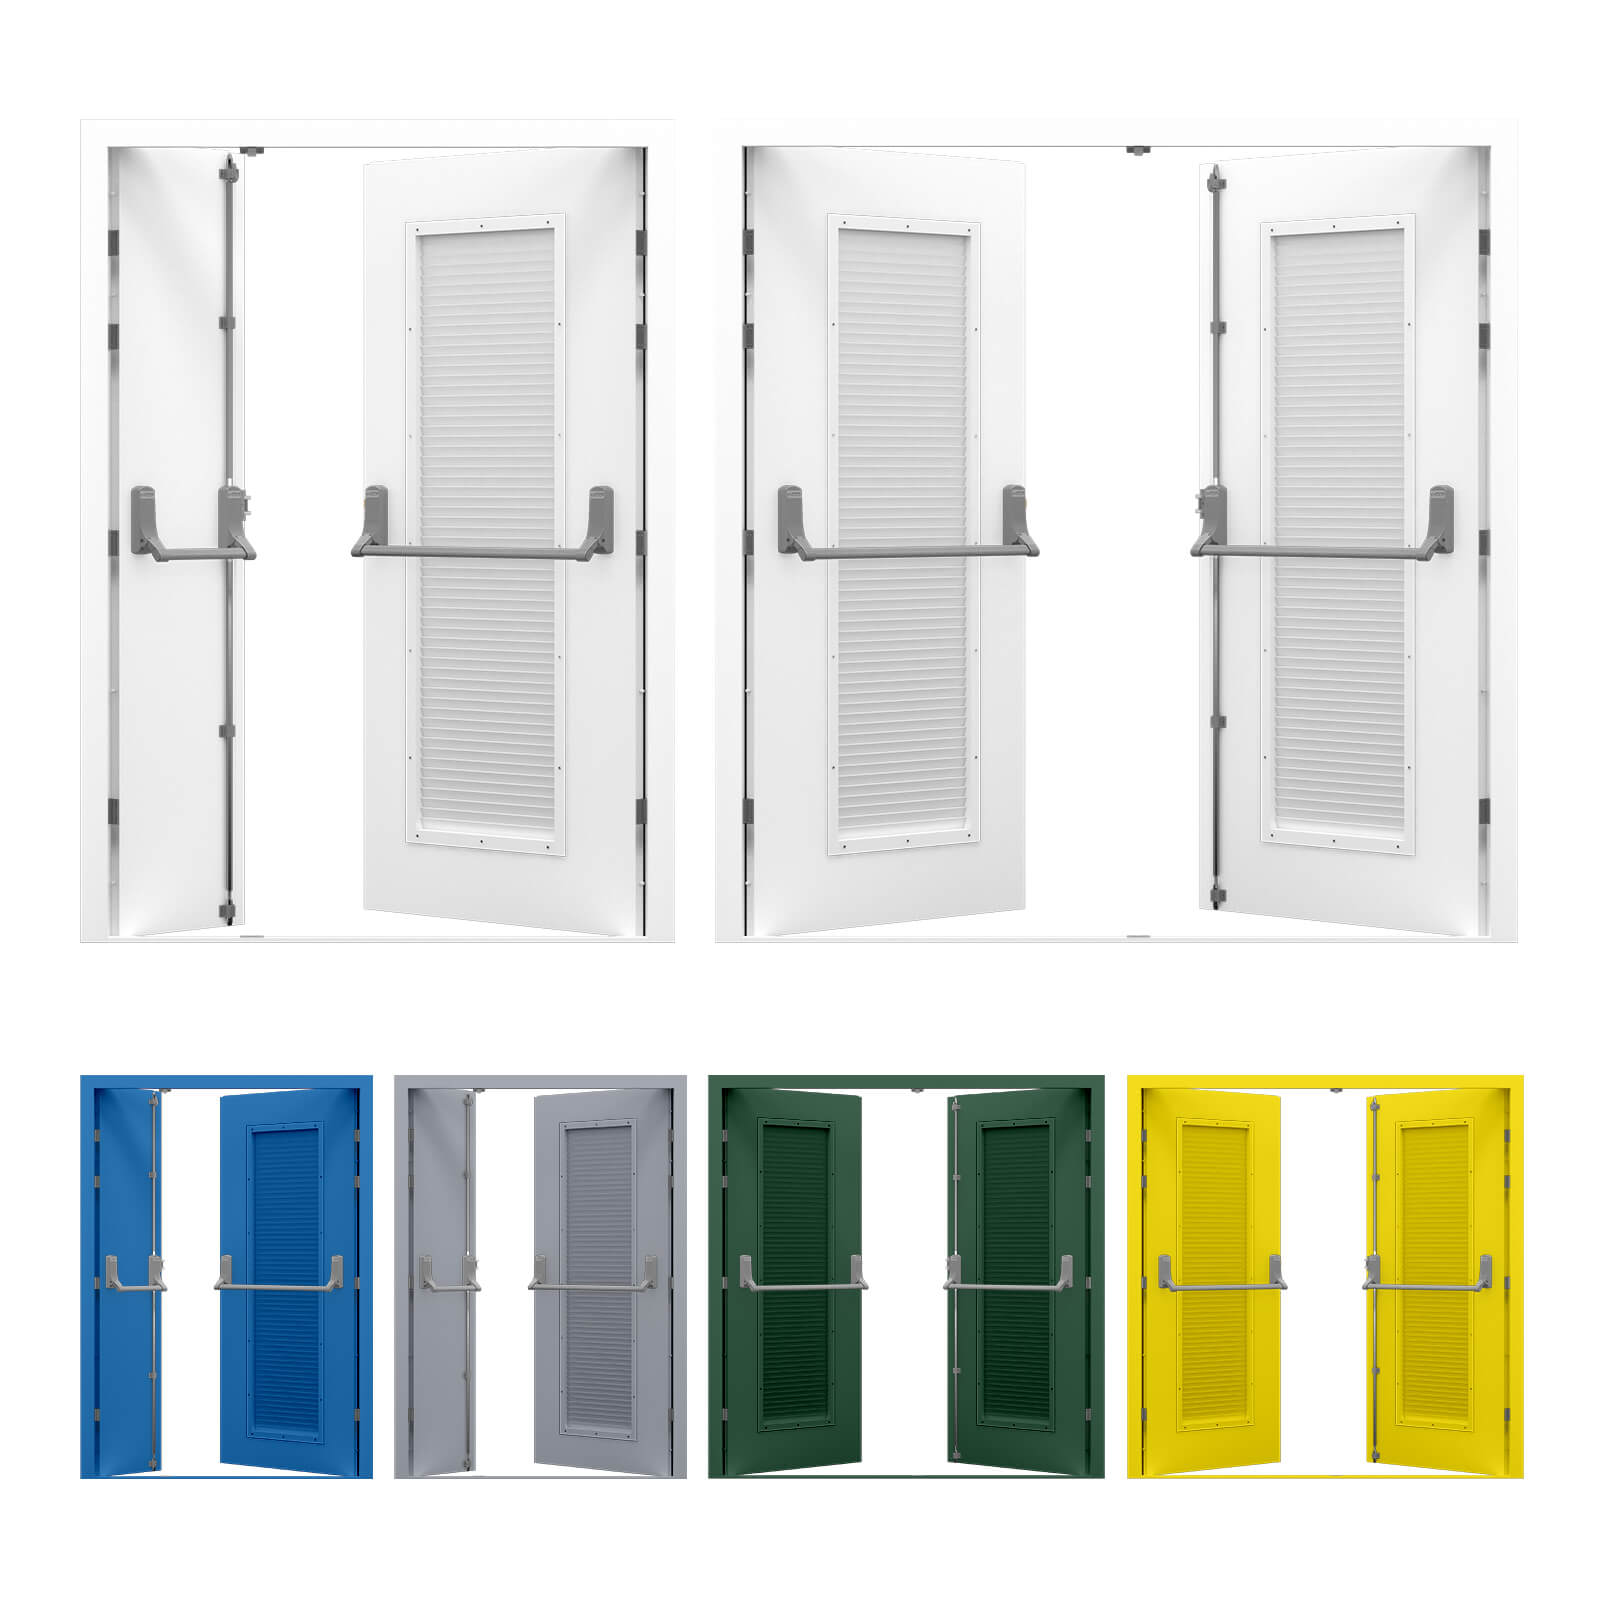 Louvred Double Fire Exit Door with Exidor Panic Bar  sc 1 st  Lathamu0027s Steel Doors & Louvred Double Fire Exit Door | Lathamu0027s Steel Doors